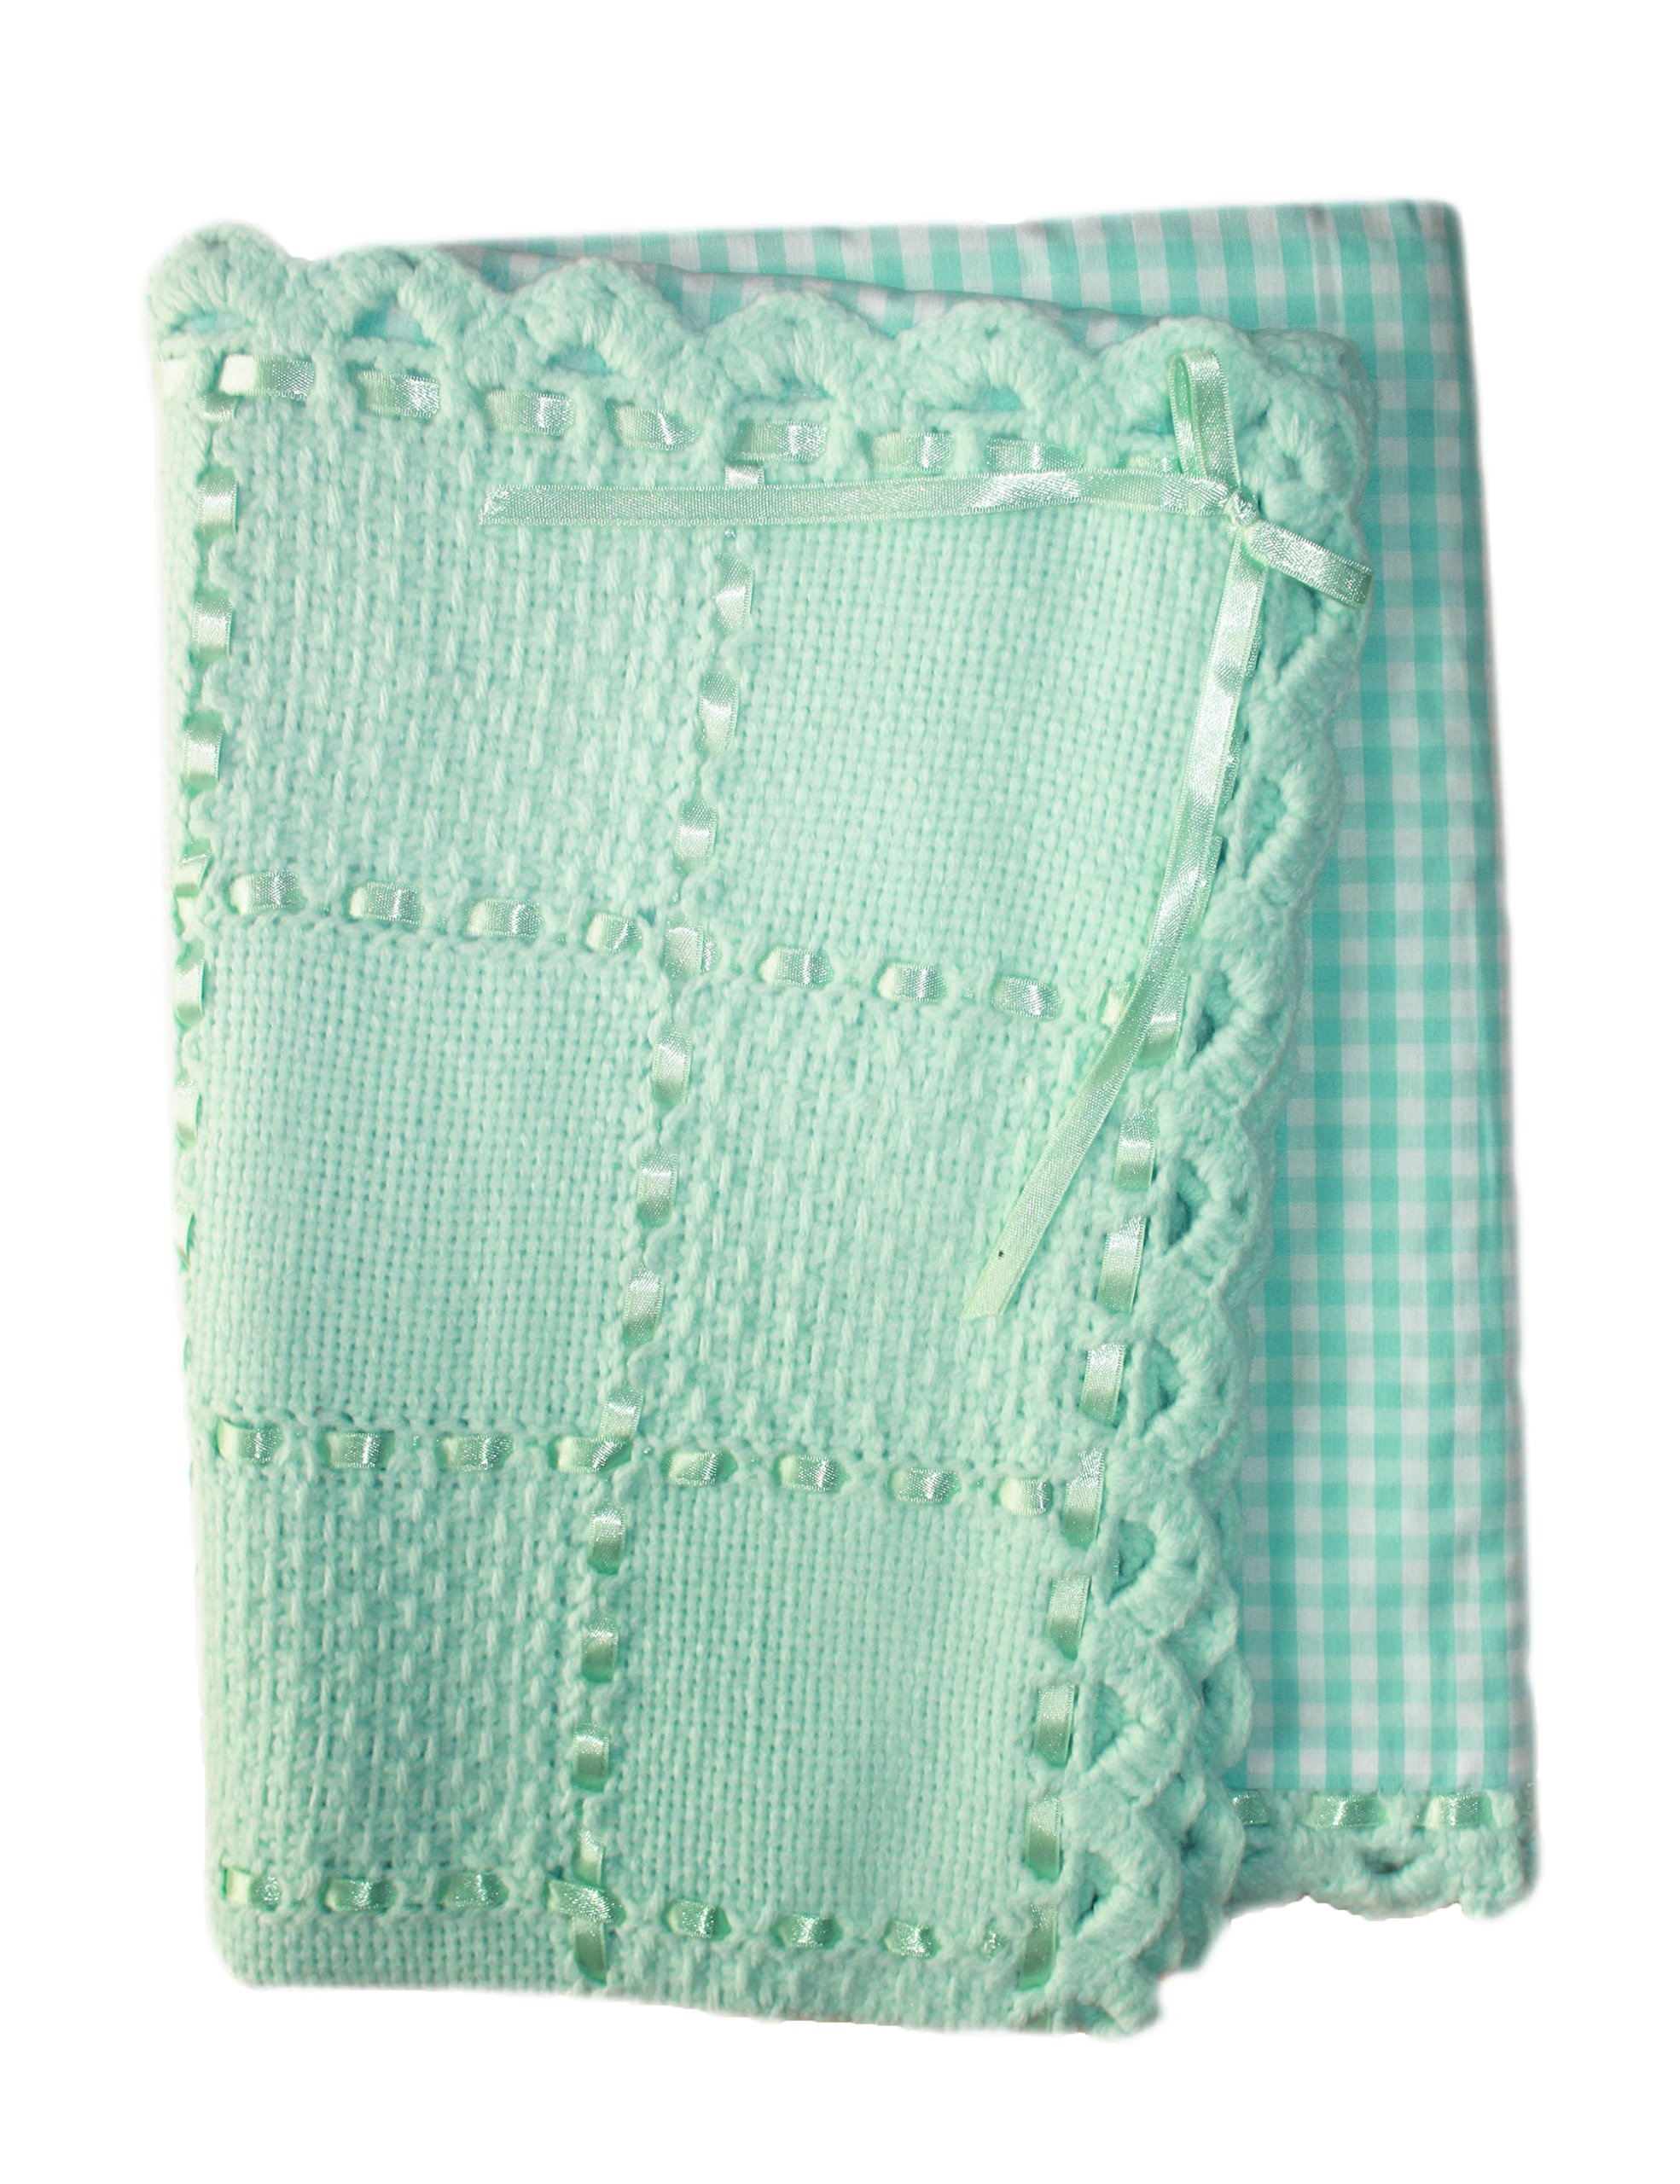 Knitted Baby Blanket Handmade with Love by a Grandma. Knit Newborn Baby Blanket with Soft Cotton Backing (BabyLove3)